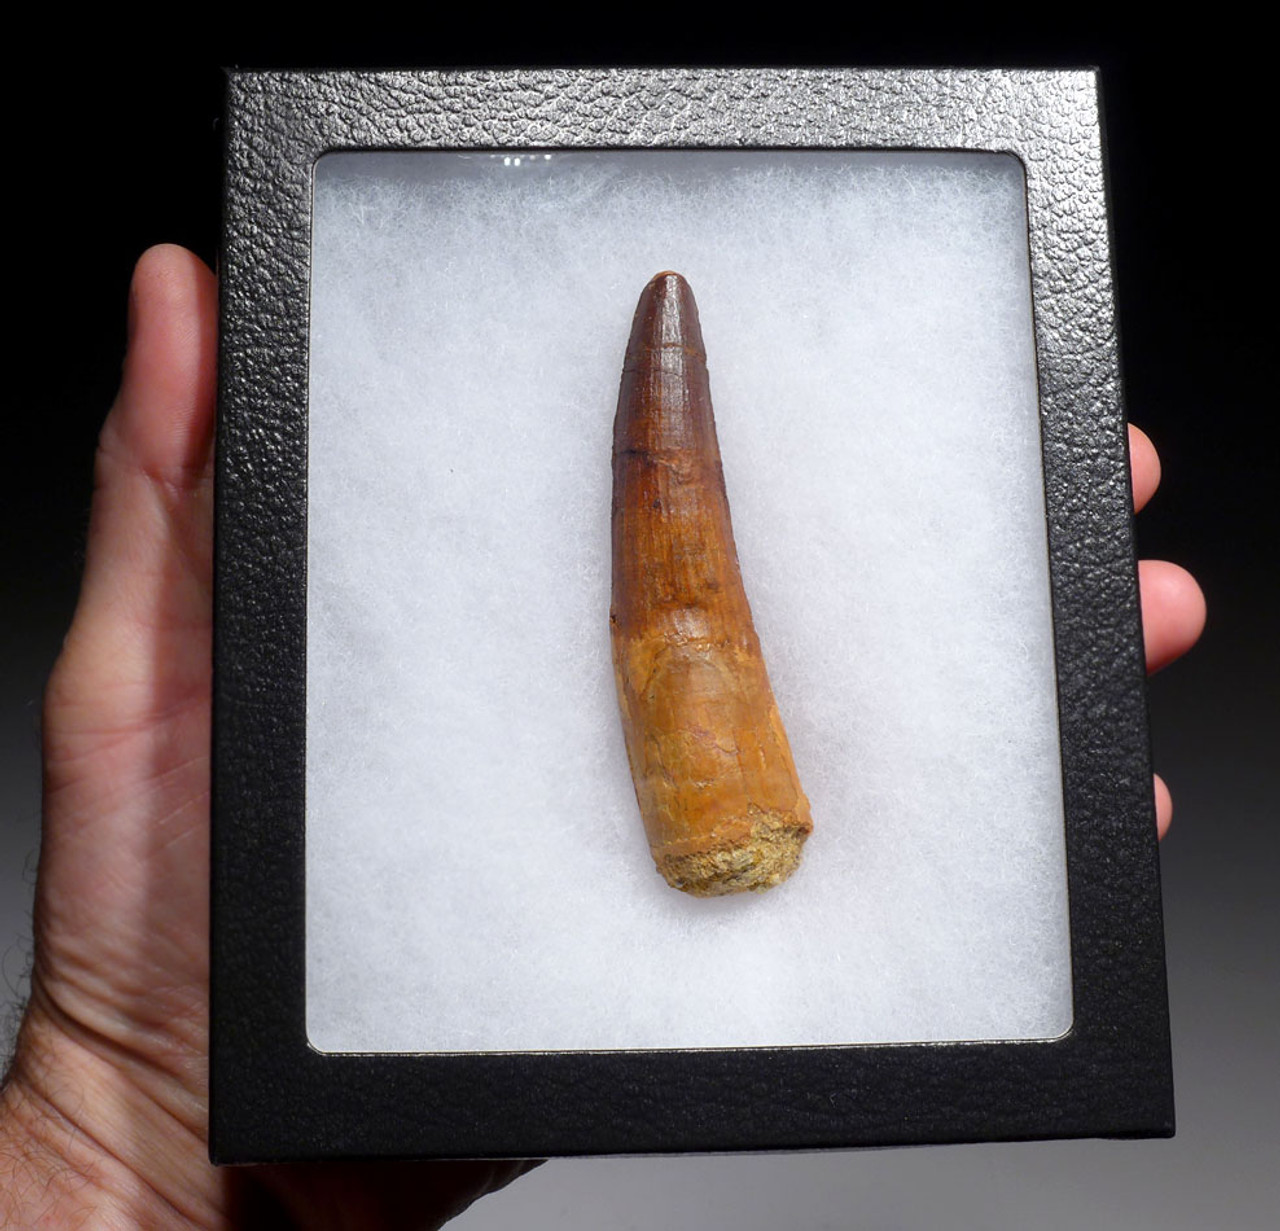 STUNNING LARGE 3.7 INCH SPINOSAURUS DINOSAUR FOSSIL TOOTH WITH BURNT PUMPKIN ORANGE ENAMEL *DT5-461